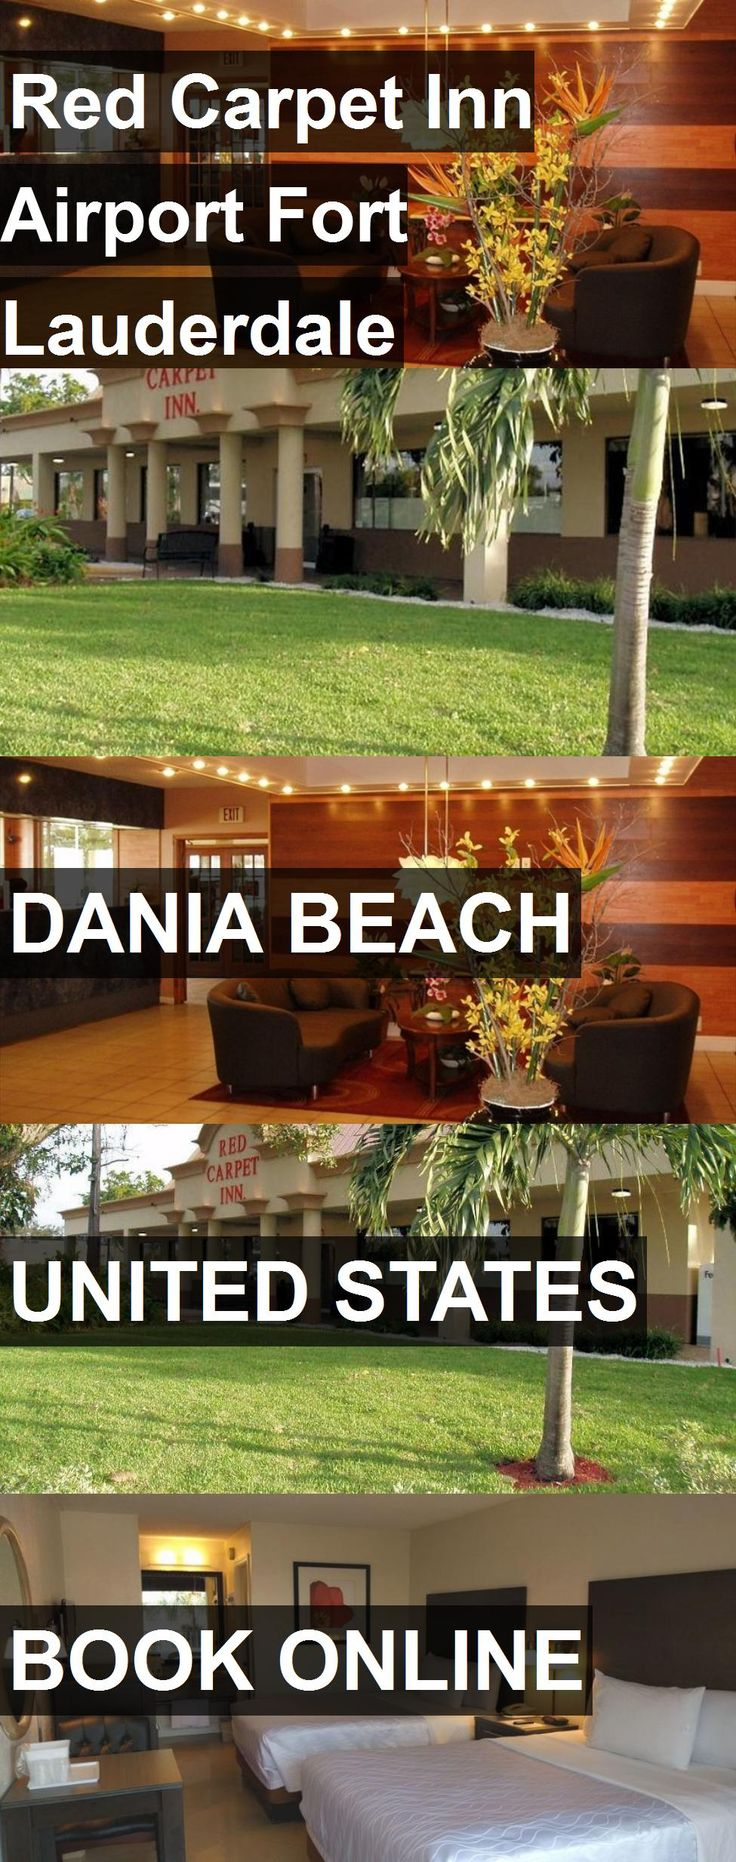 Hotel Red Carpet Inn Airport Fort Lauderdale in Dania Beach, United States. For more information, photos, reviews and best prices please follow the link. #UnitedStates #DaniaBeach #travel #vacation #hotel